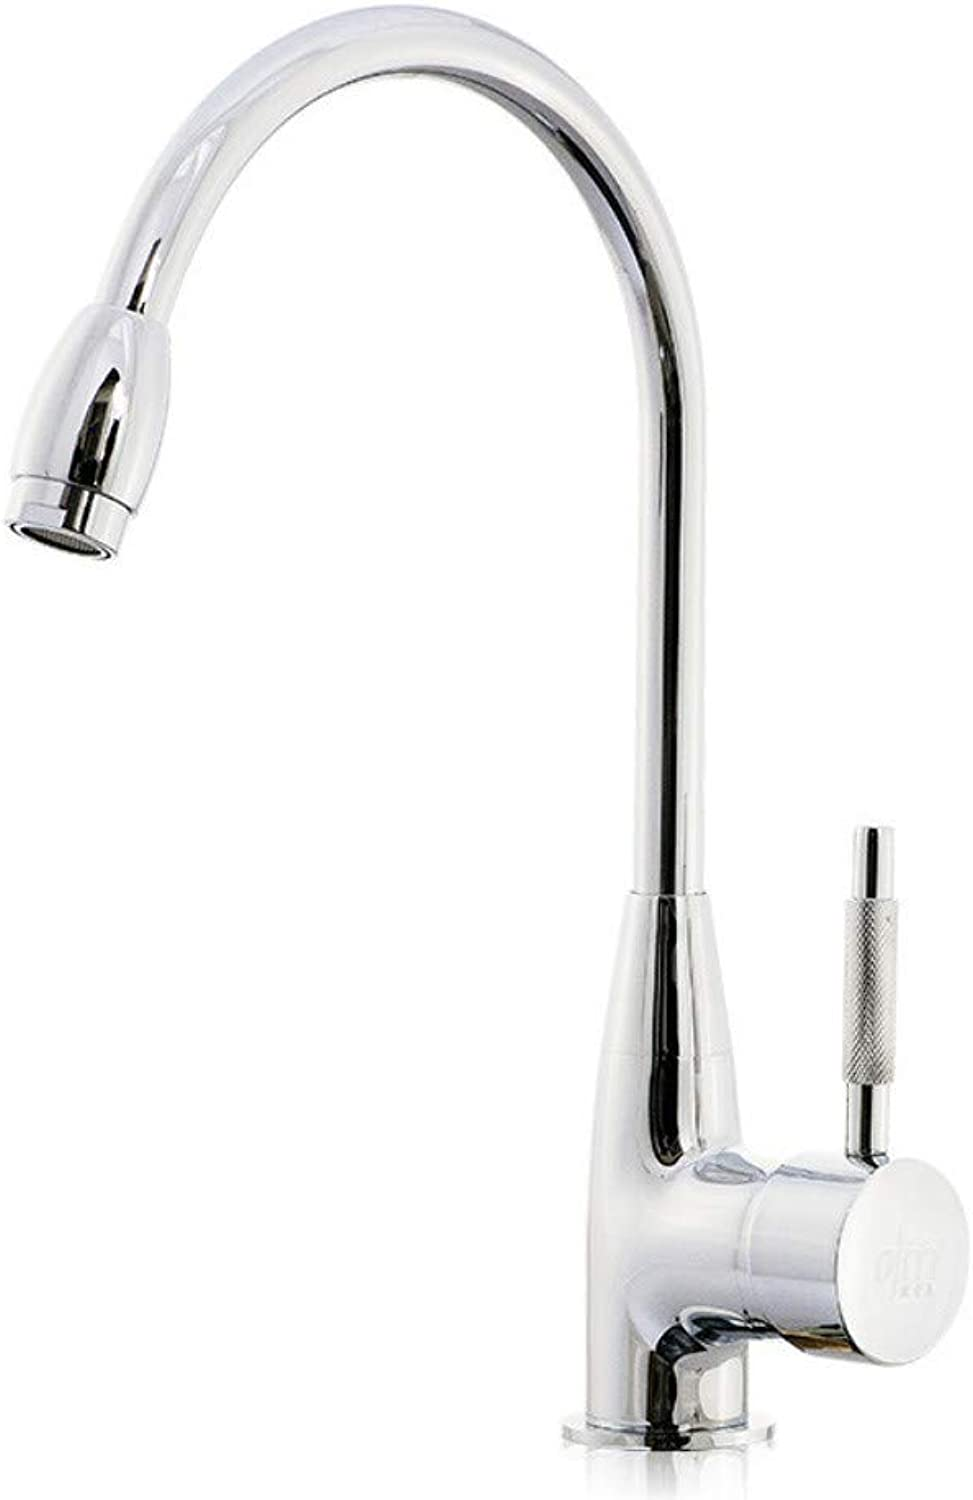 IBathUS Copper single kitchen faucet hot and cold sink sink hot and cold faucet